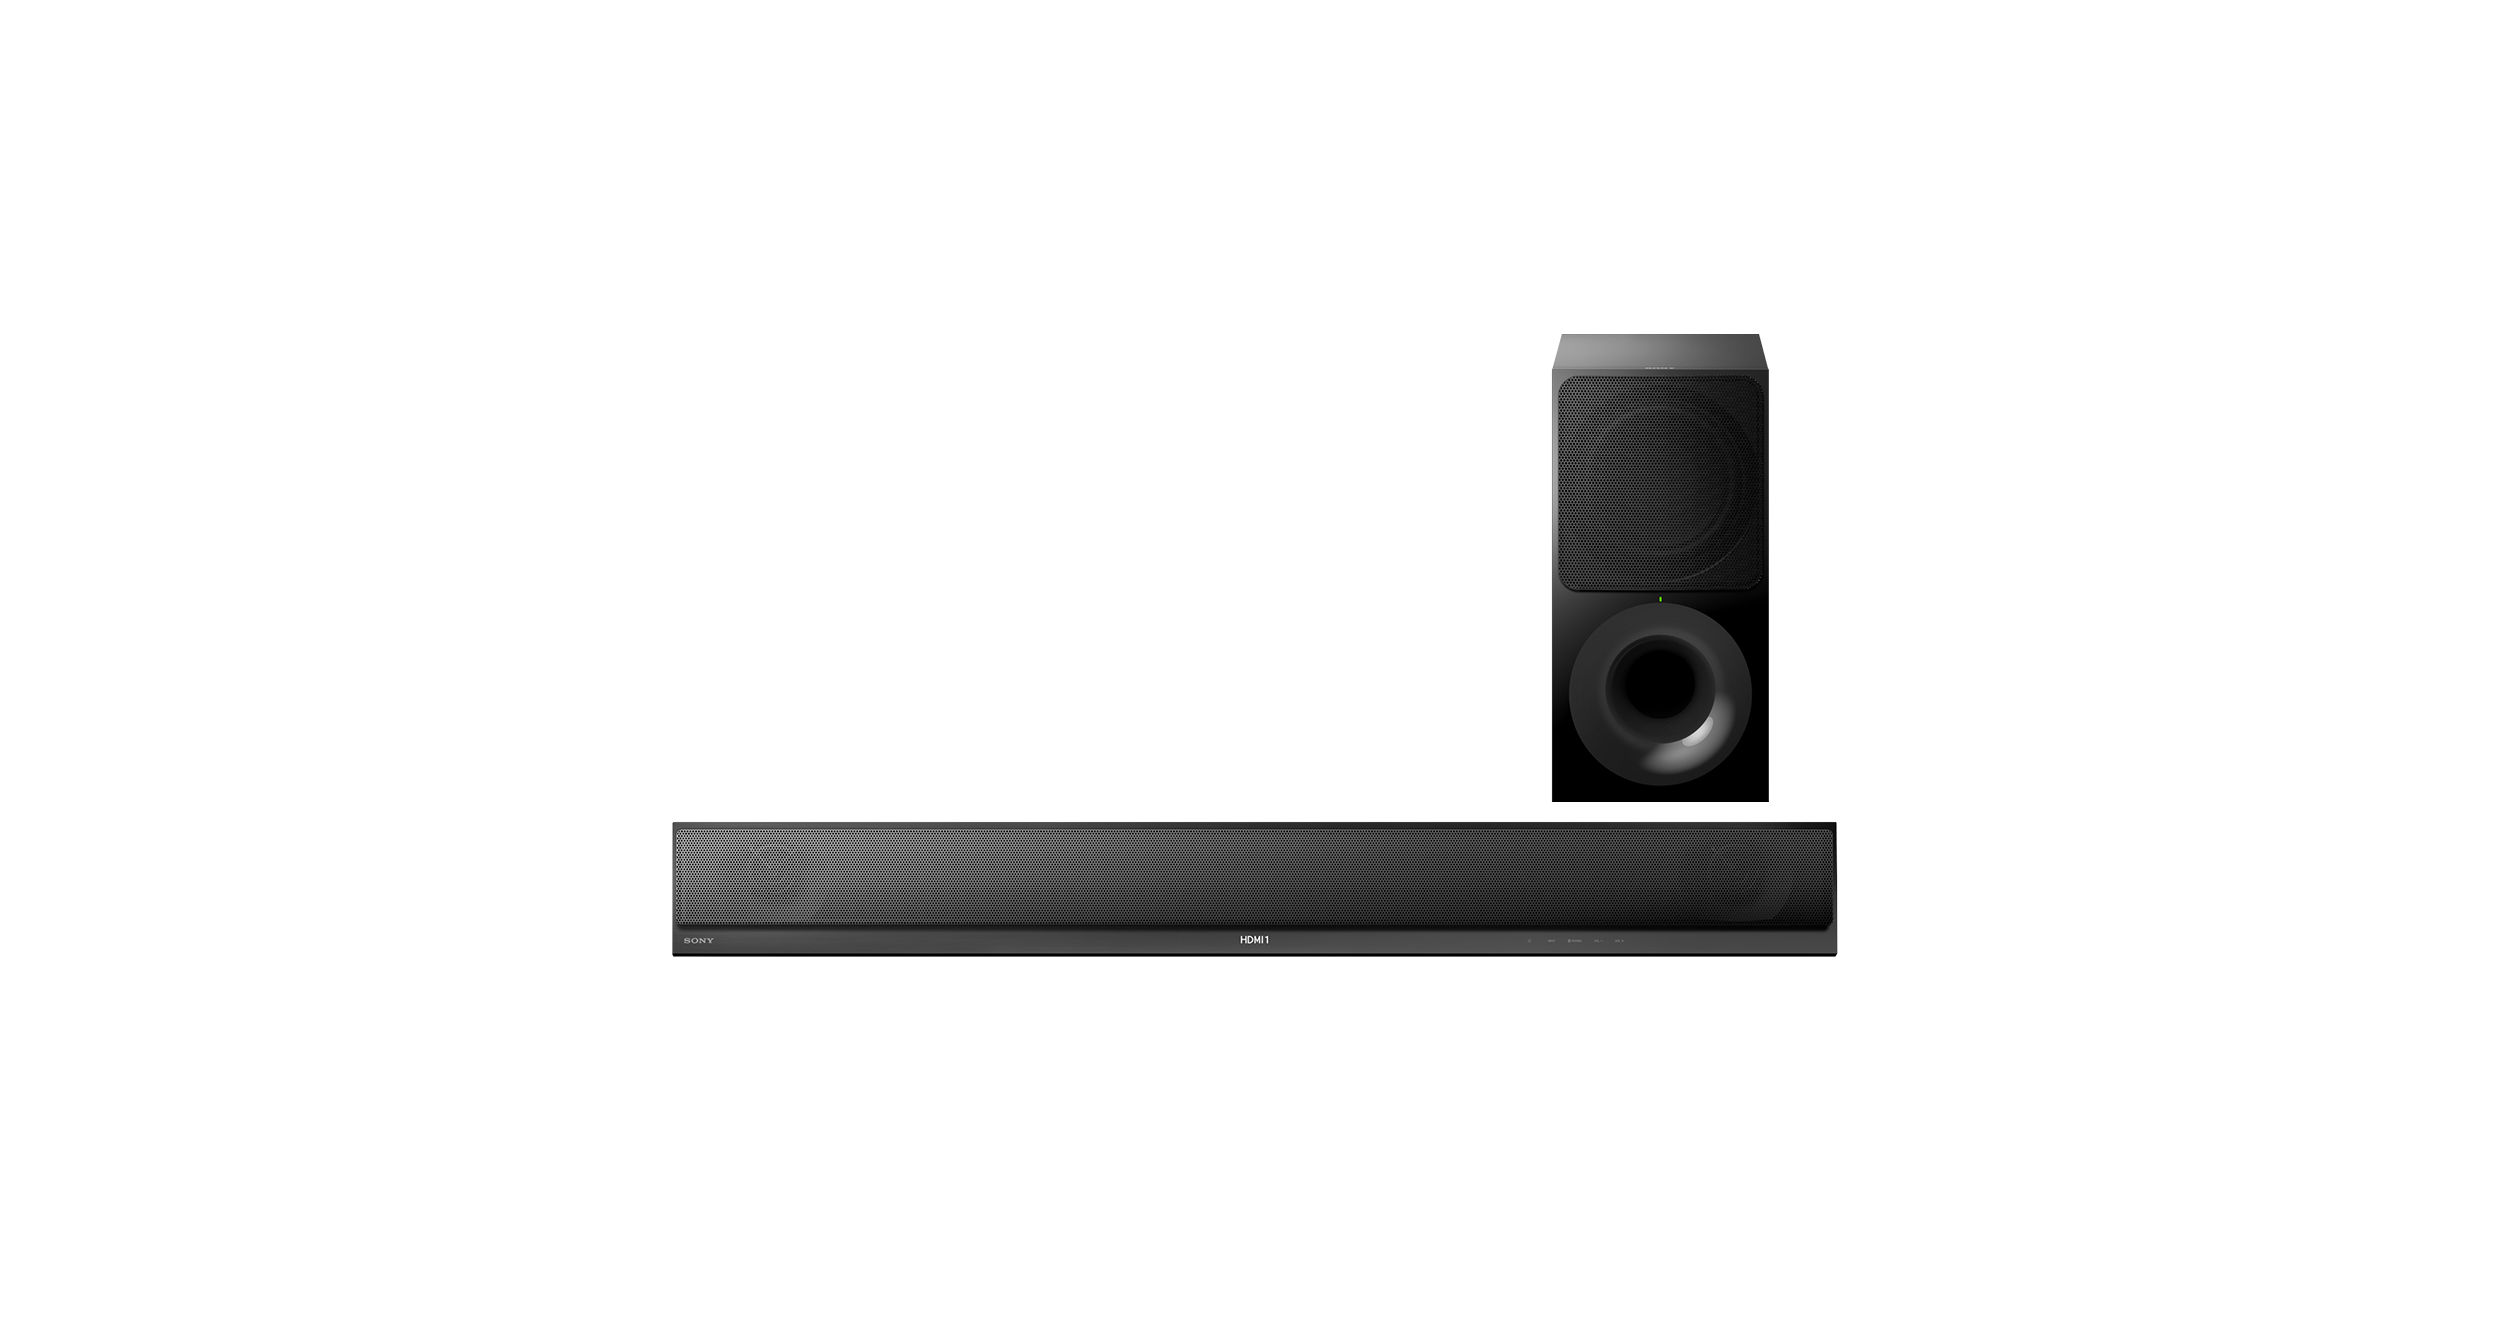 Sony Launches Soundbar HT-ST5000 in India